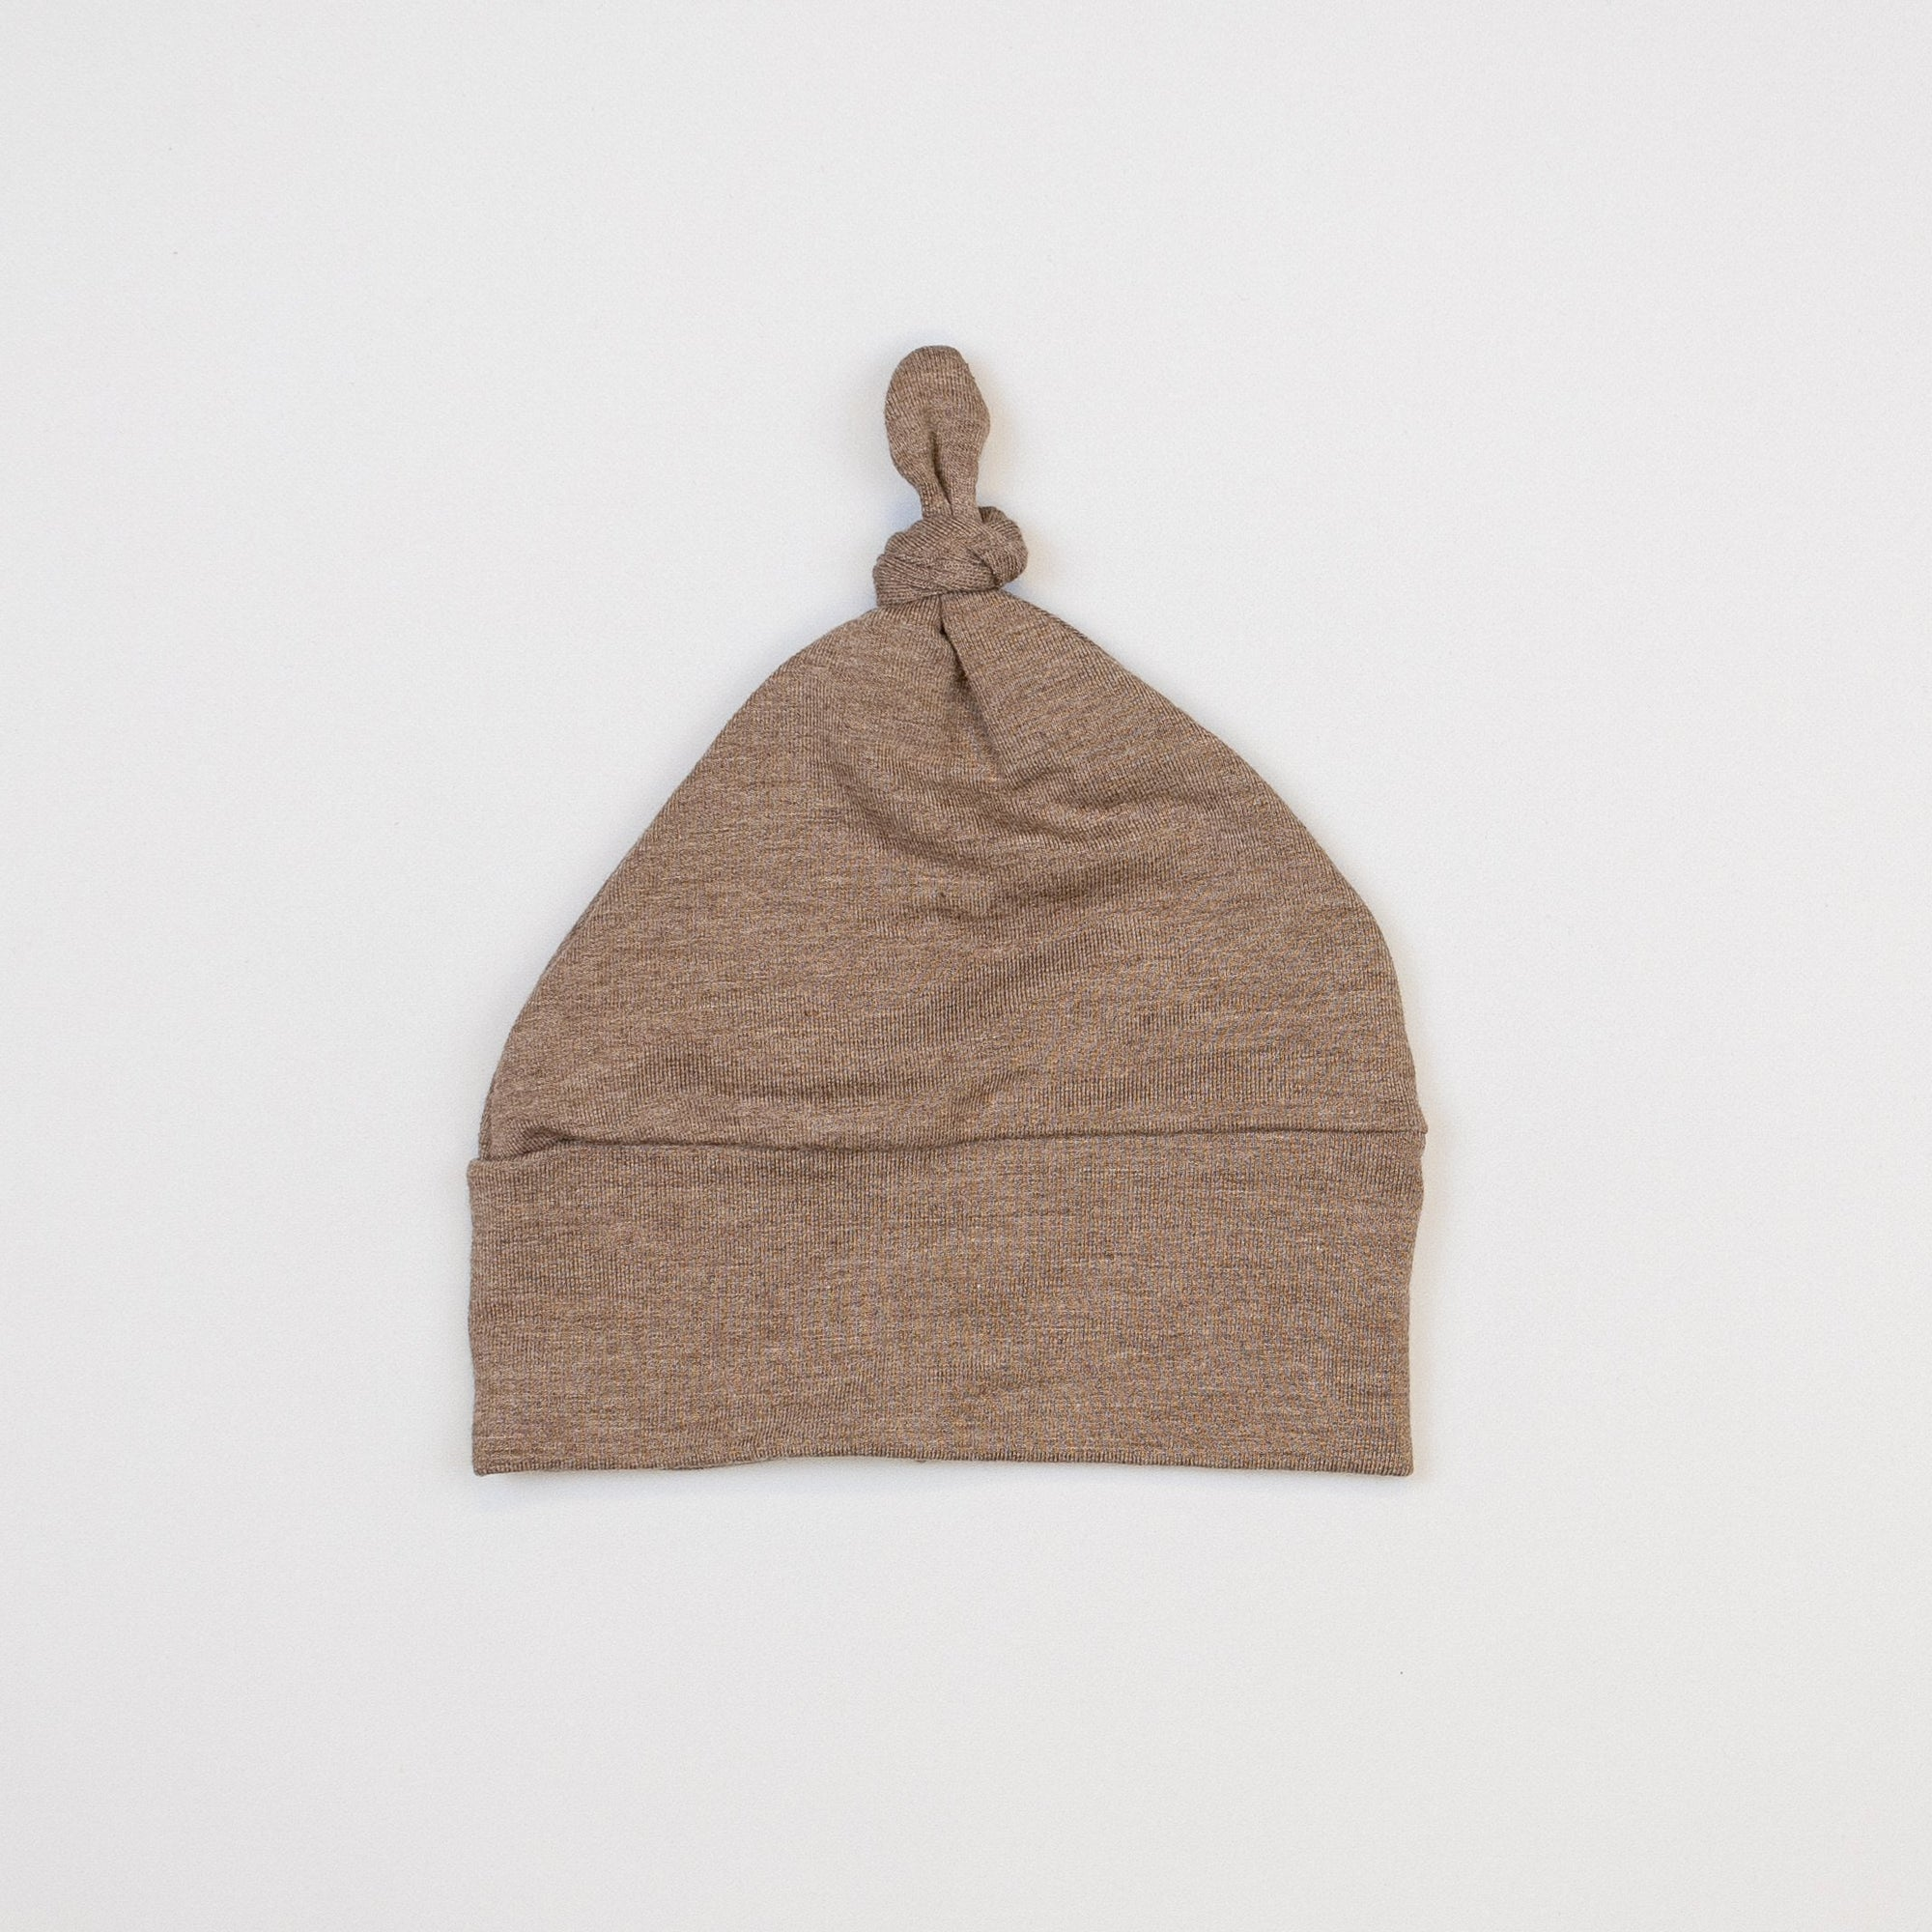 Cuddle Sleep Dream Knot Hat Small (0-3m) Heathered Brown Knot Hat